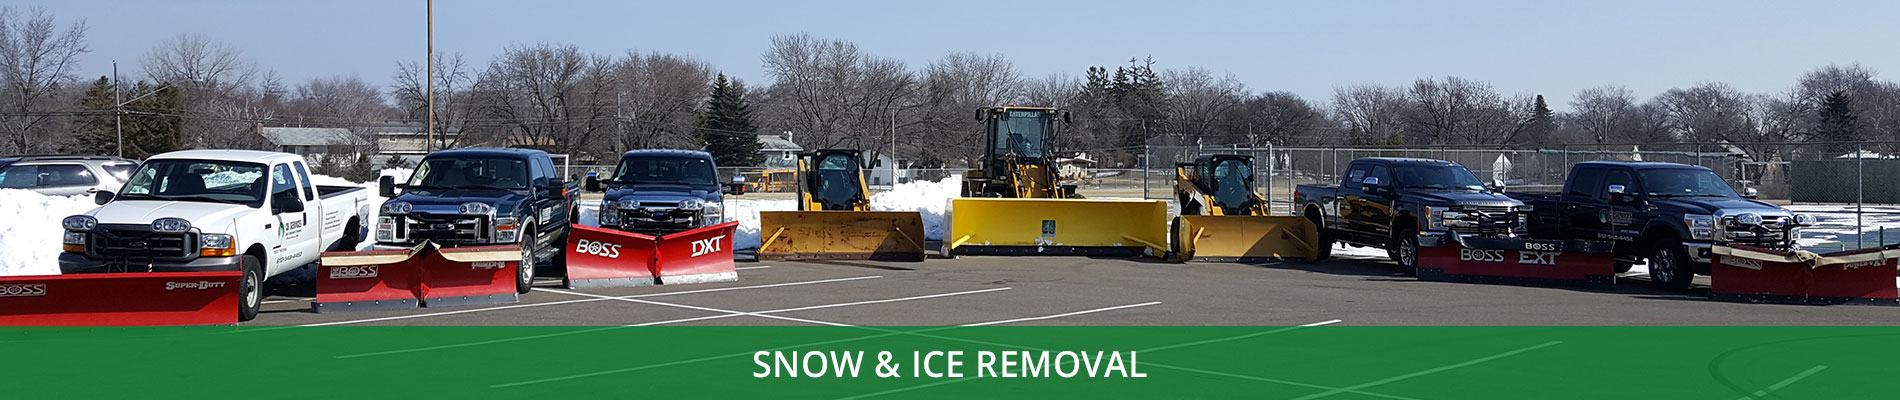 Snow-Removal-Services-Banner.png